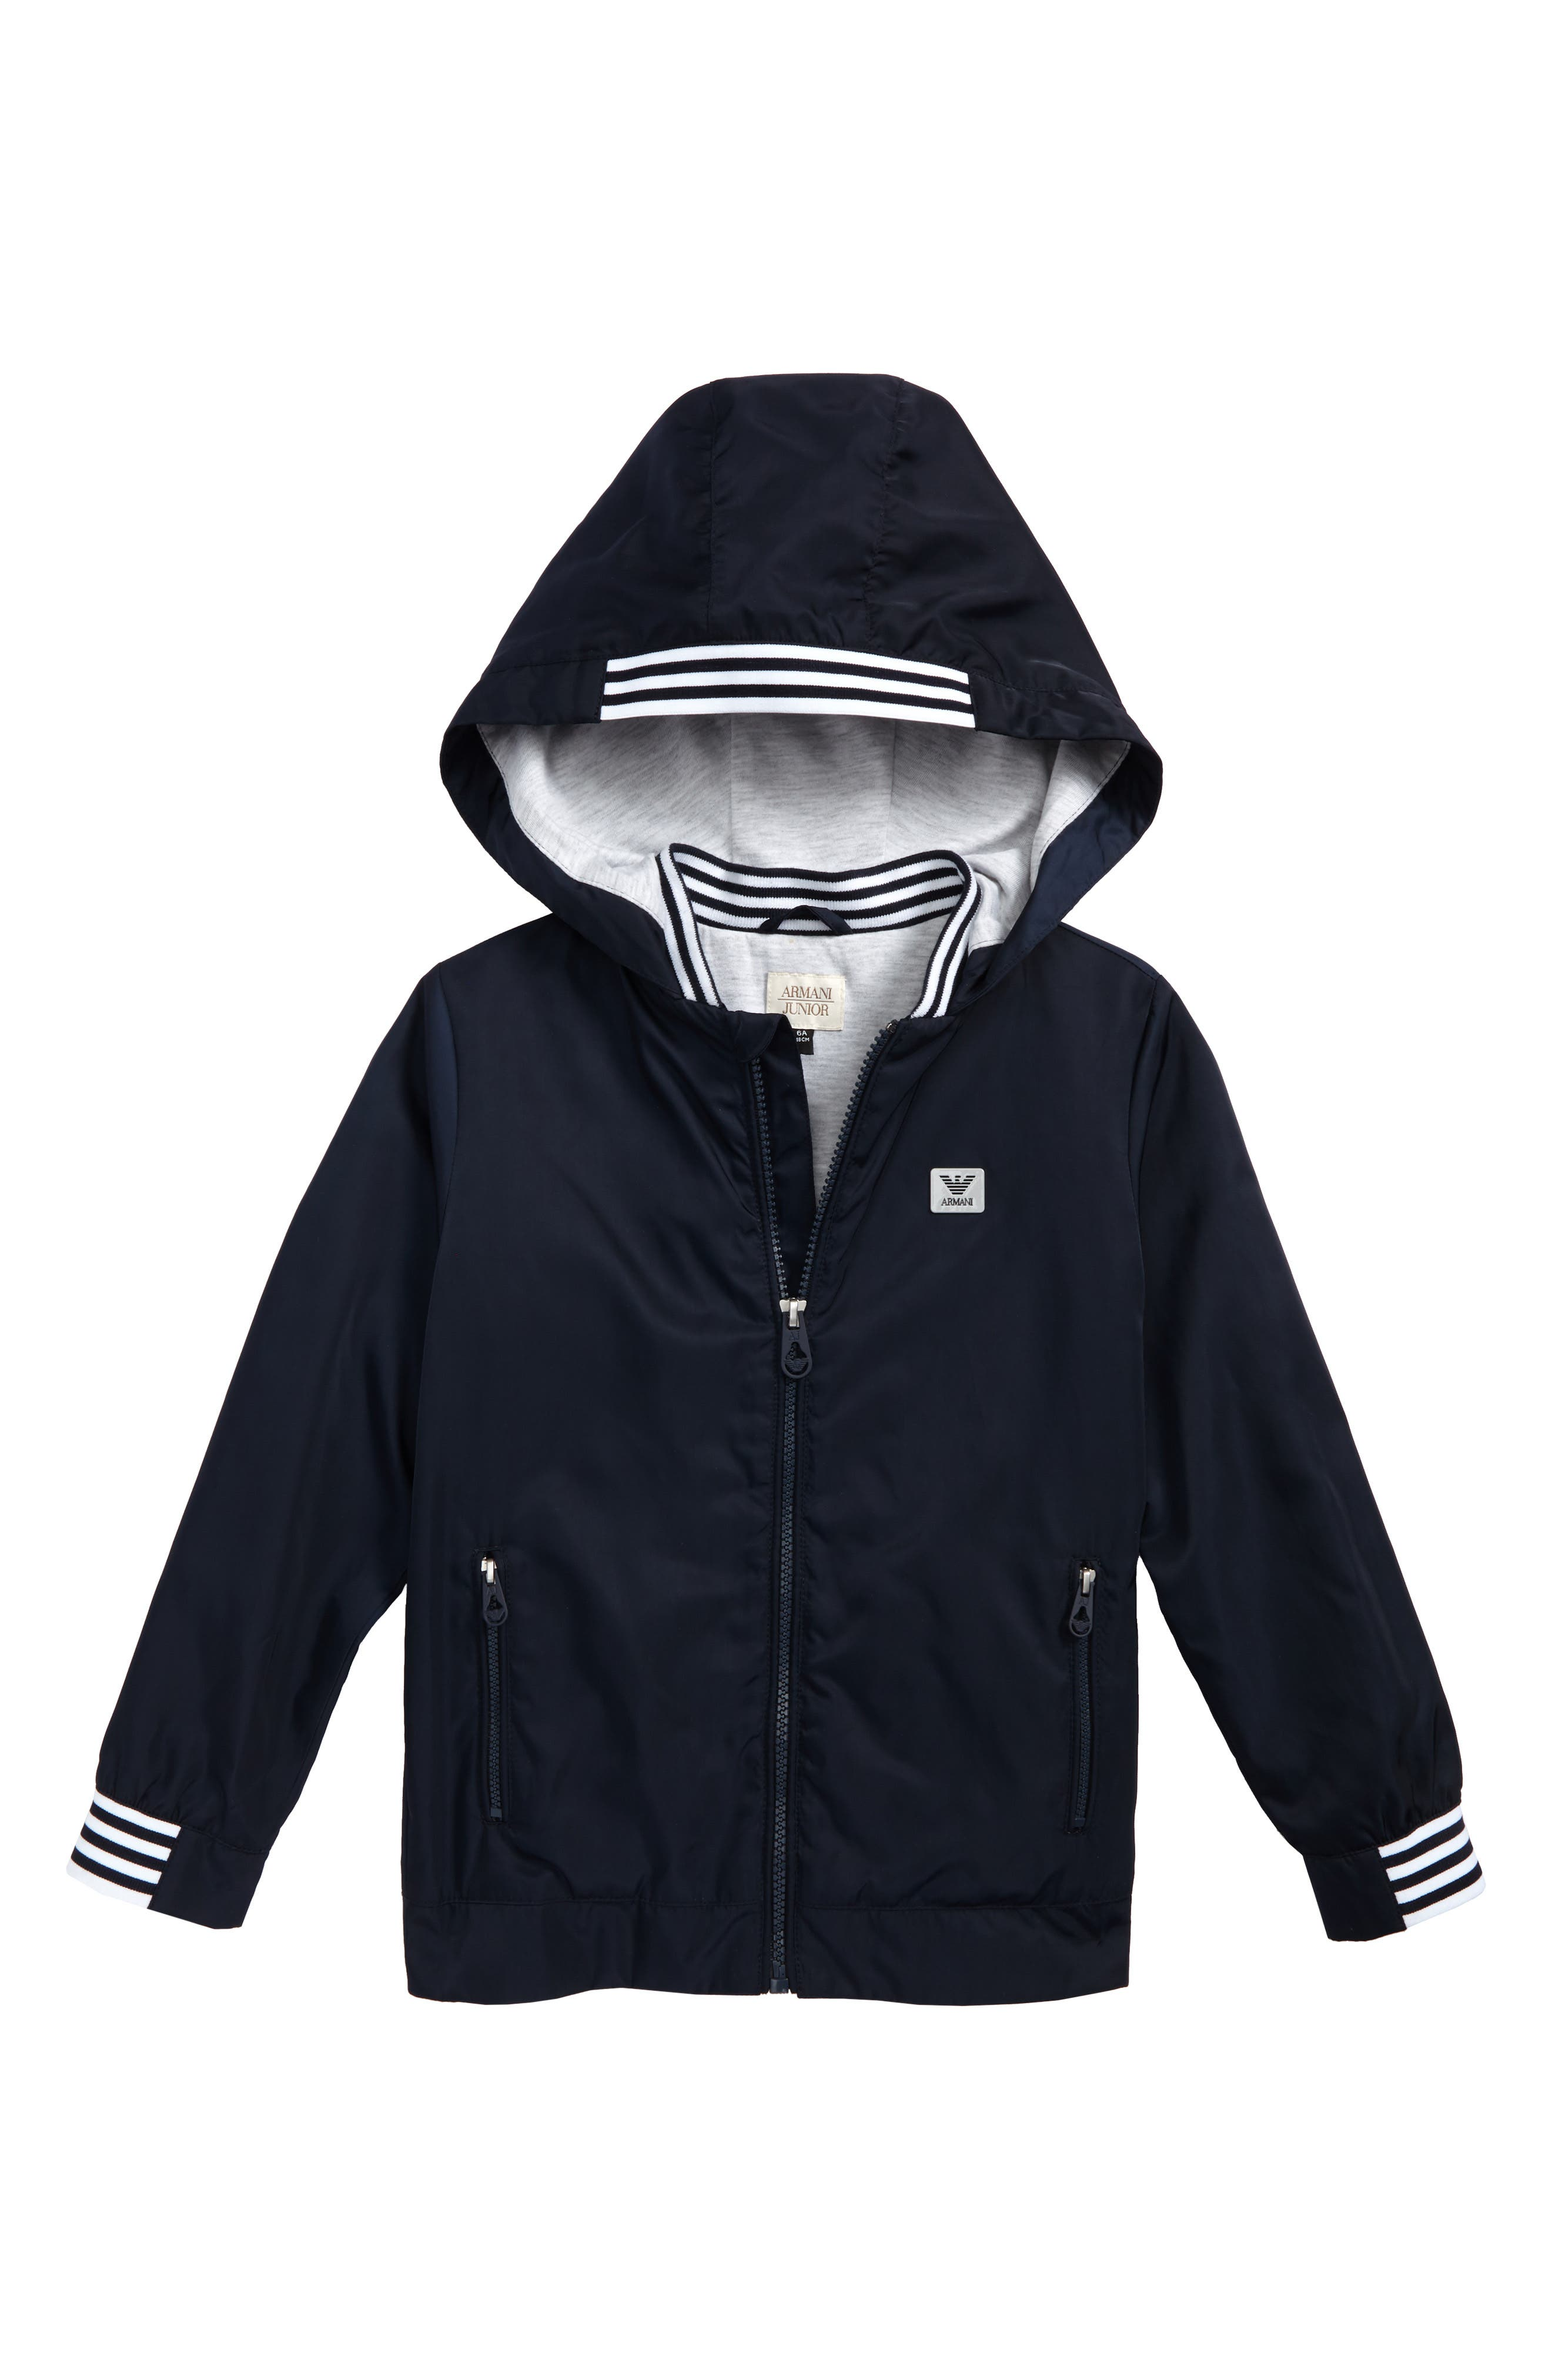 Alternate Image 1 Selected - Armani Junior Logo Hooded Jacket (Little Boys & Big Boys)